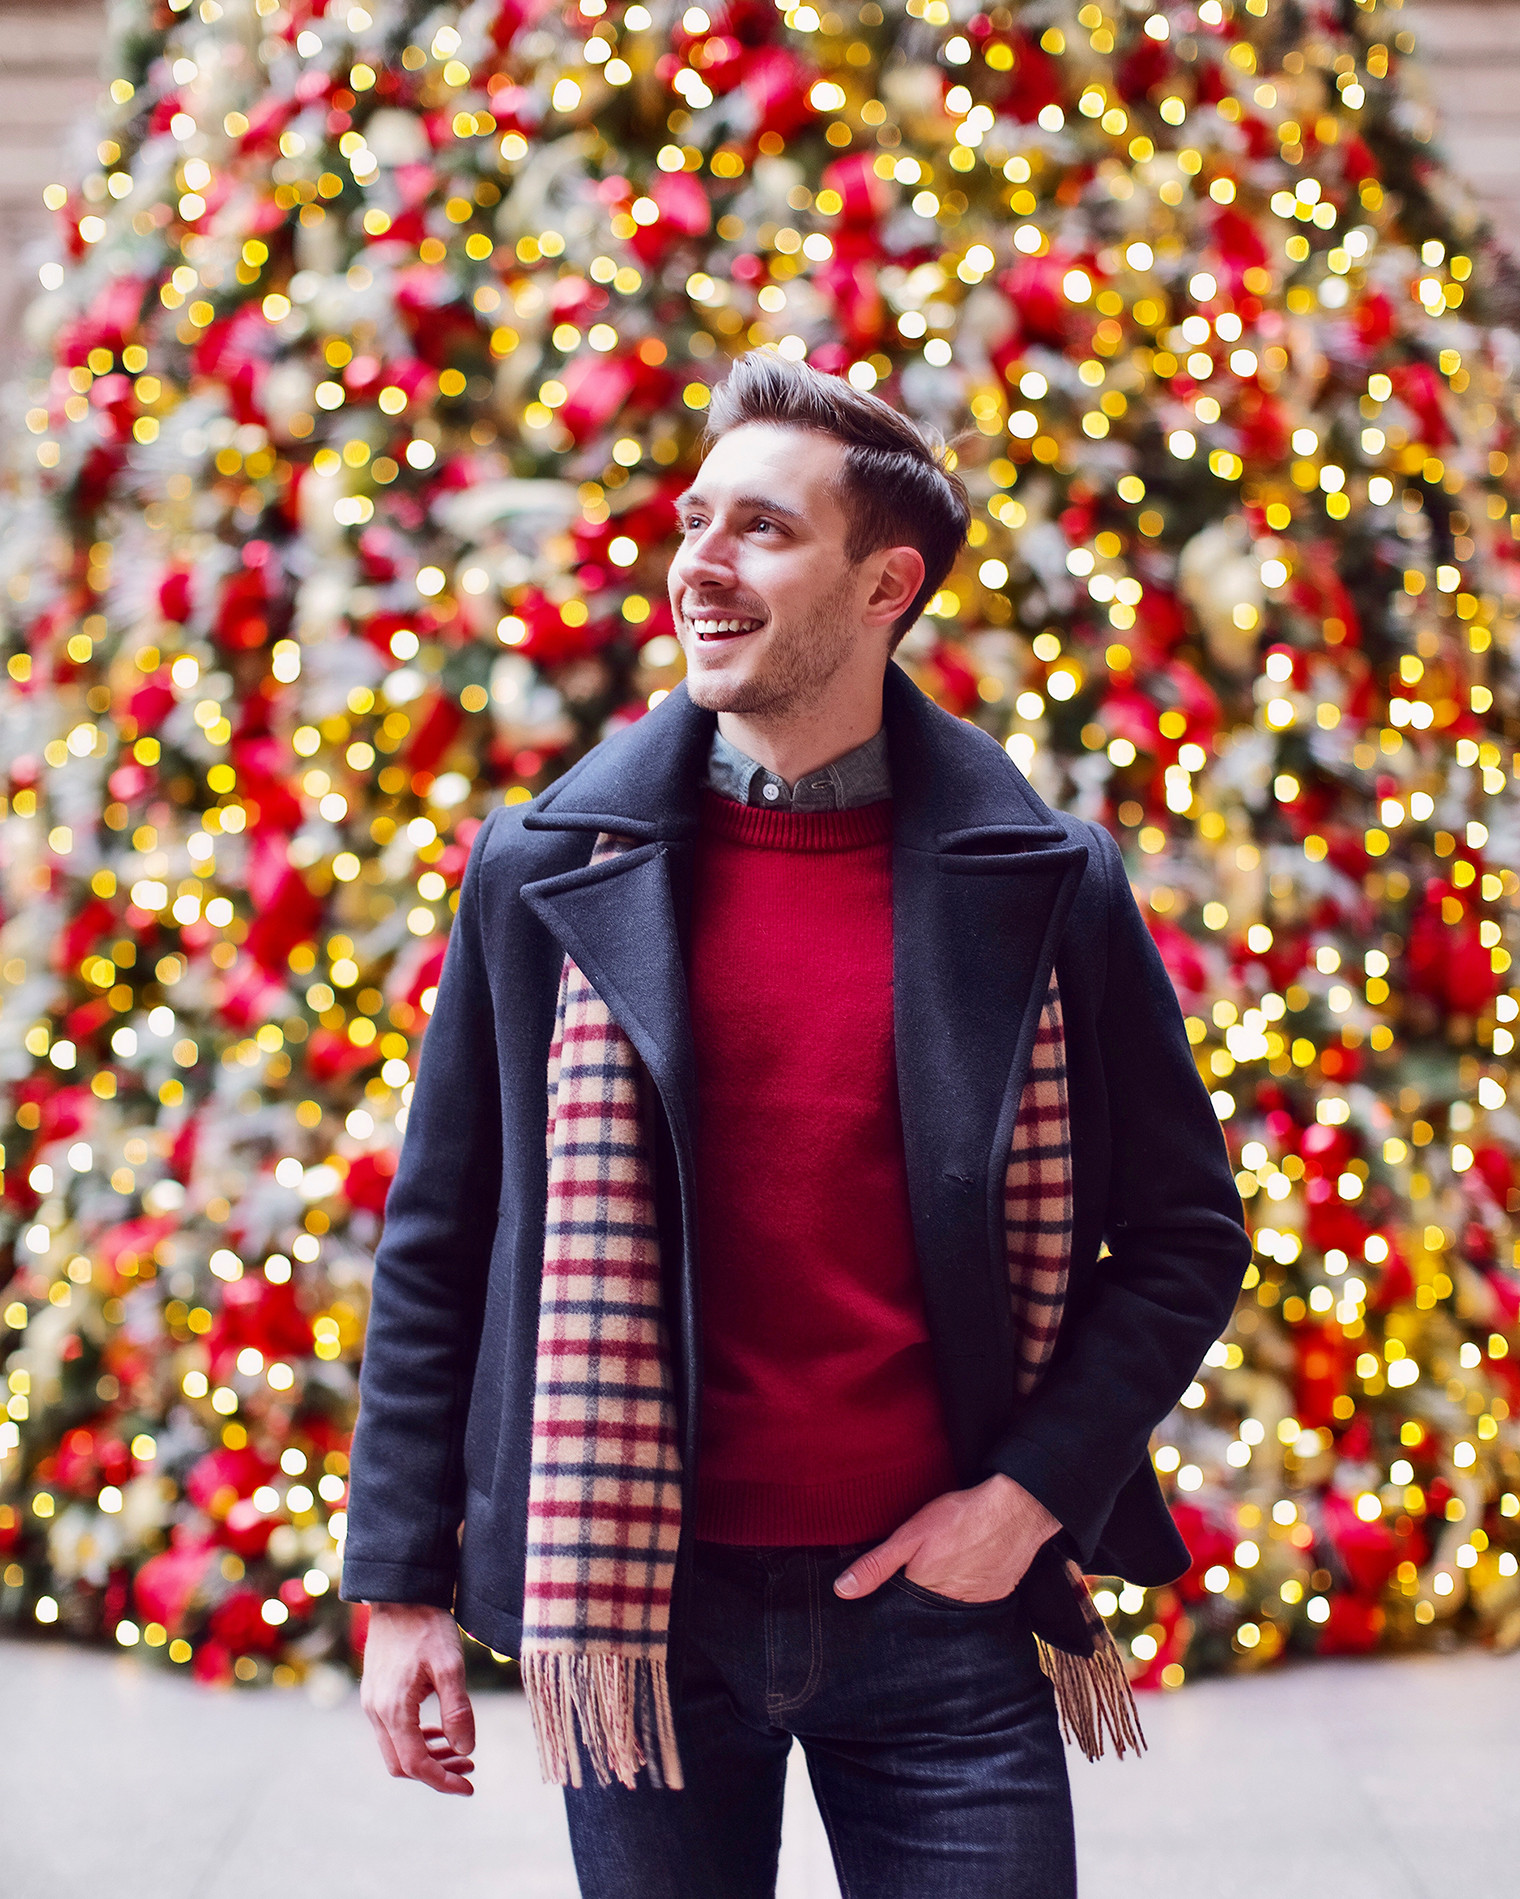 Mens Christmas Party Outfit Ideas  What To Wear To A Casual Holiday Party Bright Bazaar by